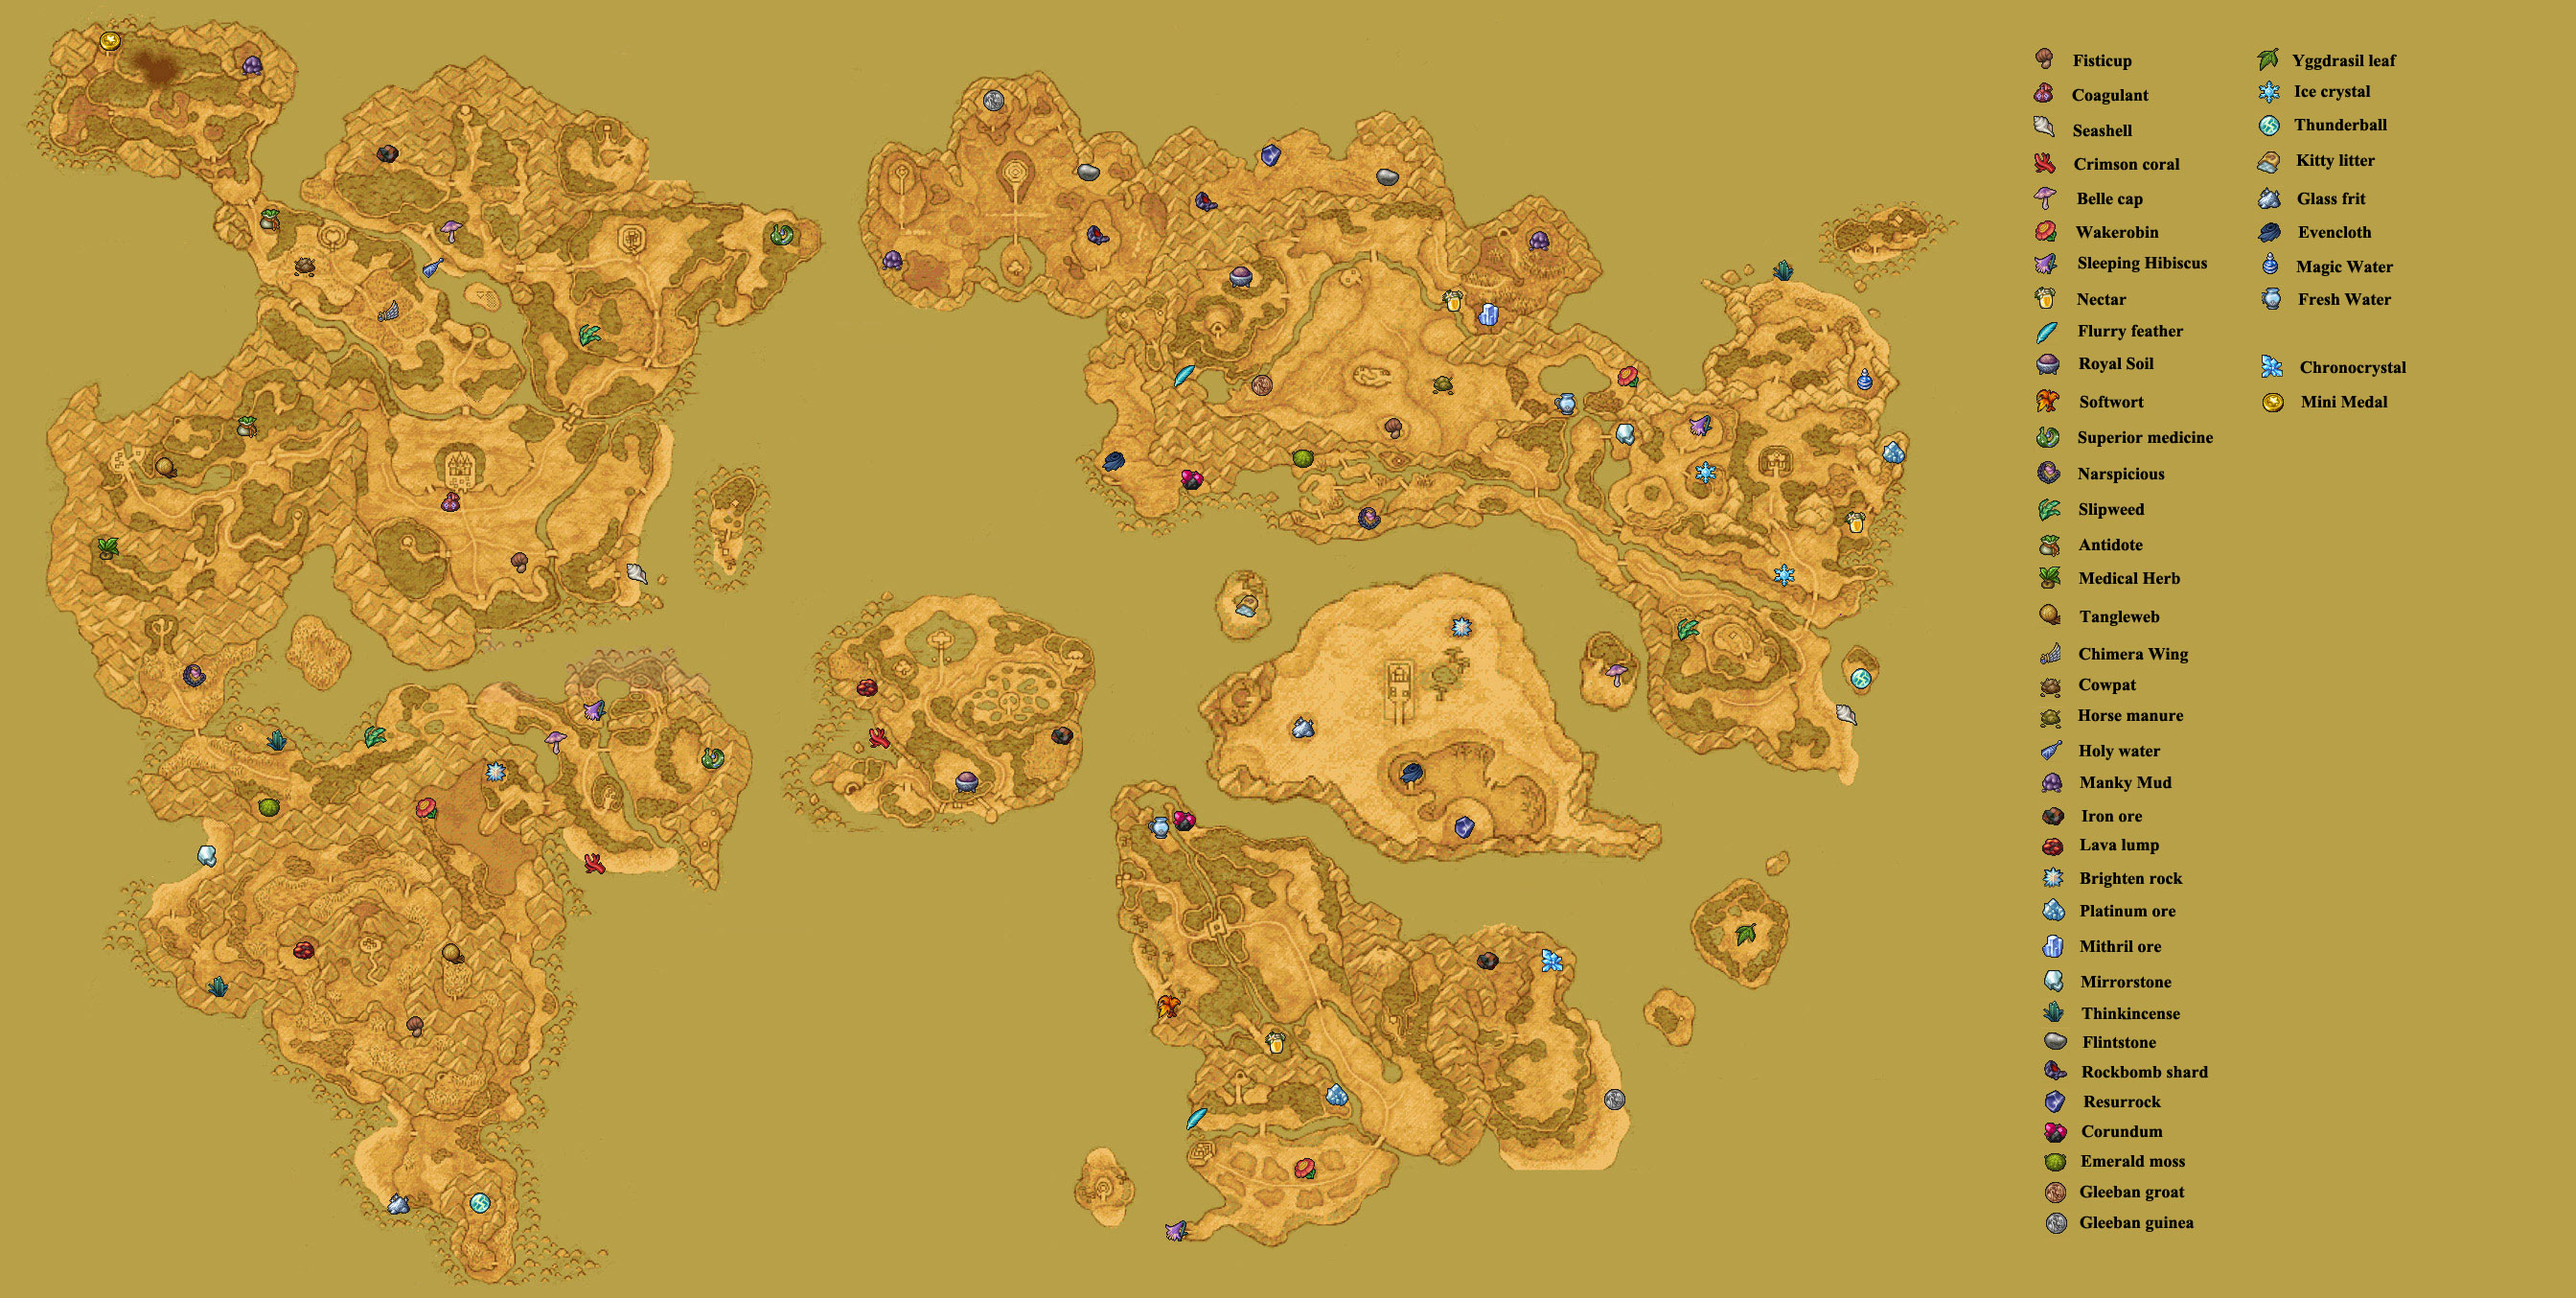 Dragon quest ix vs recommended games wiki fandom powered by wikia a location of materials on the overworld map gumiabroncs Images